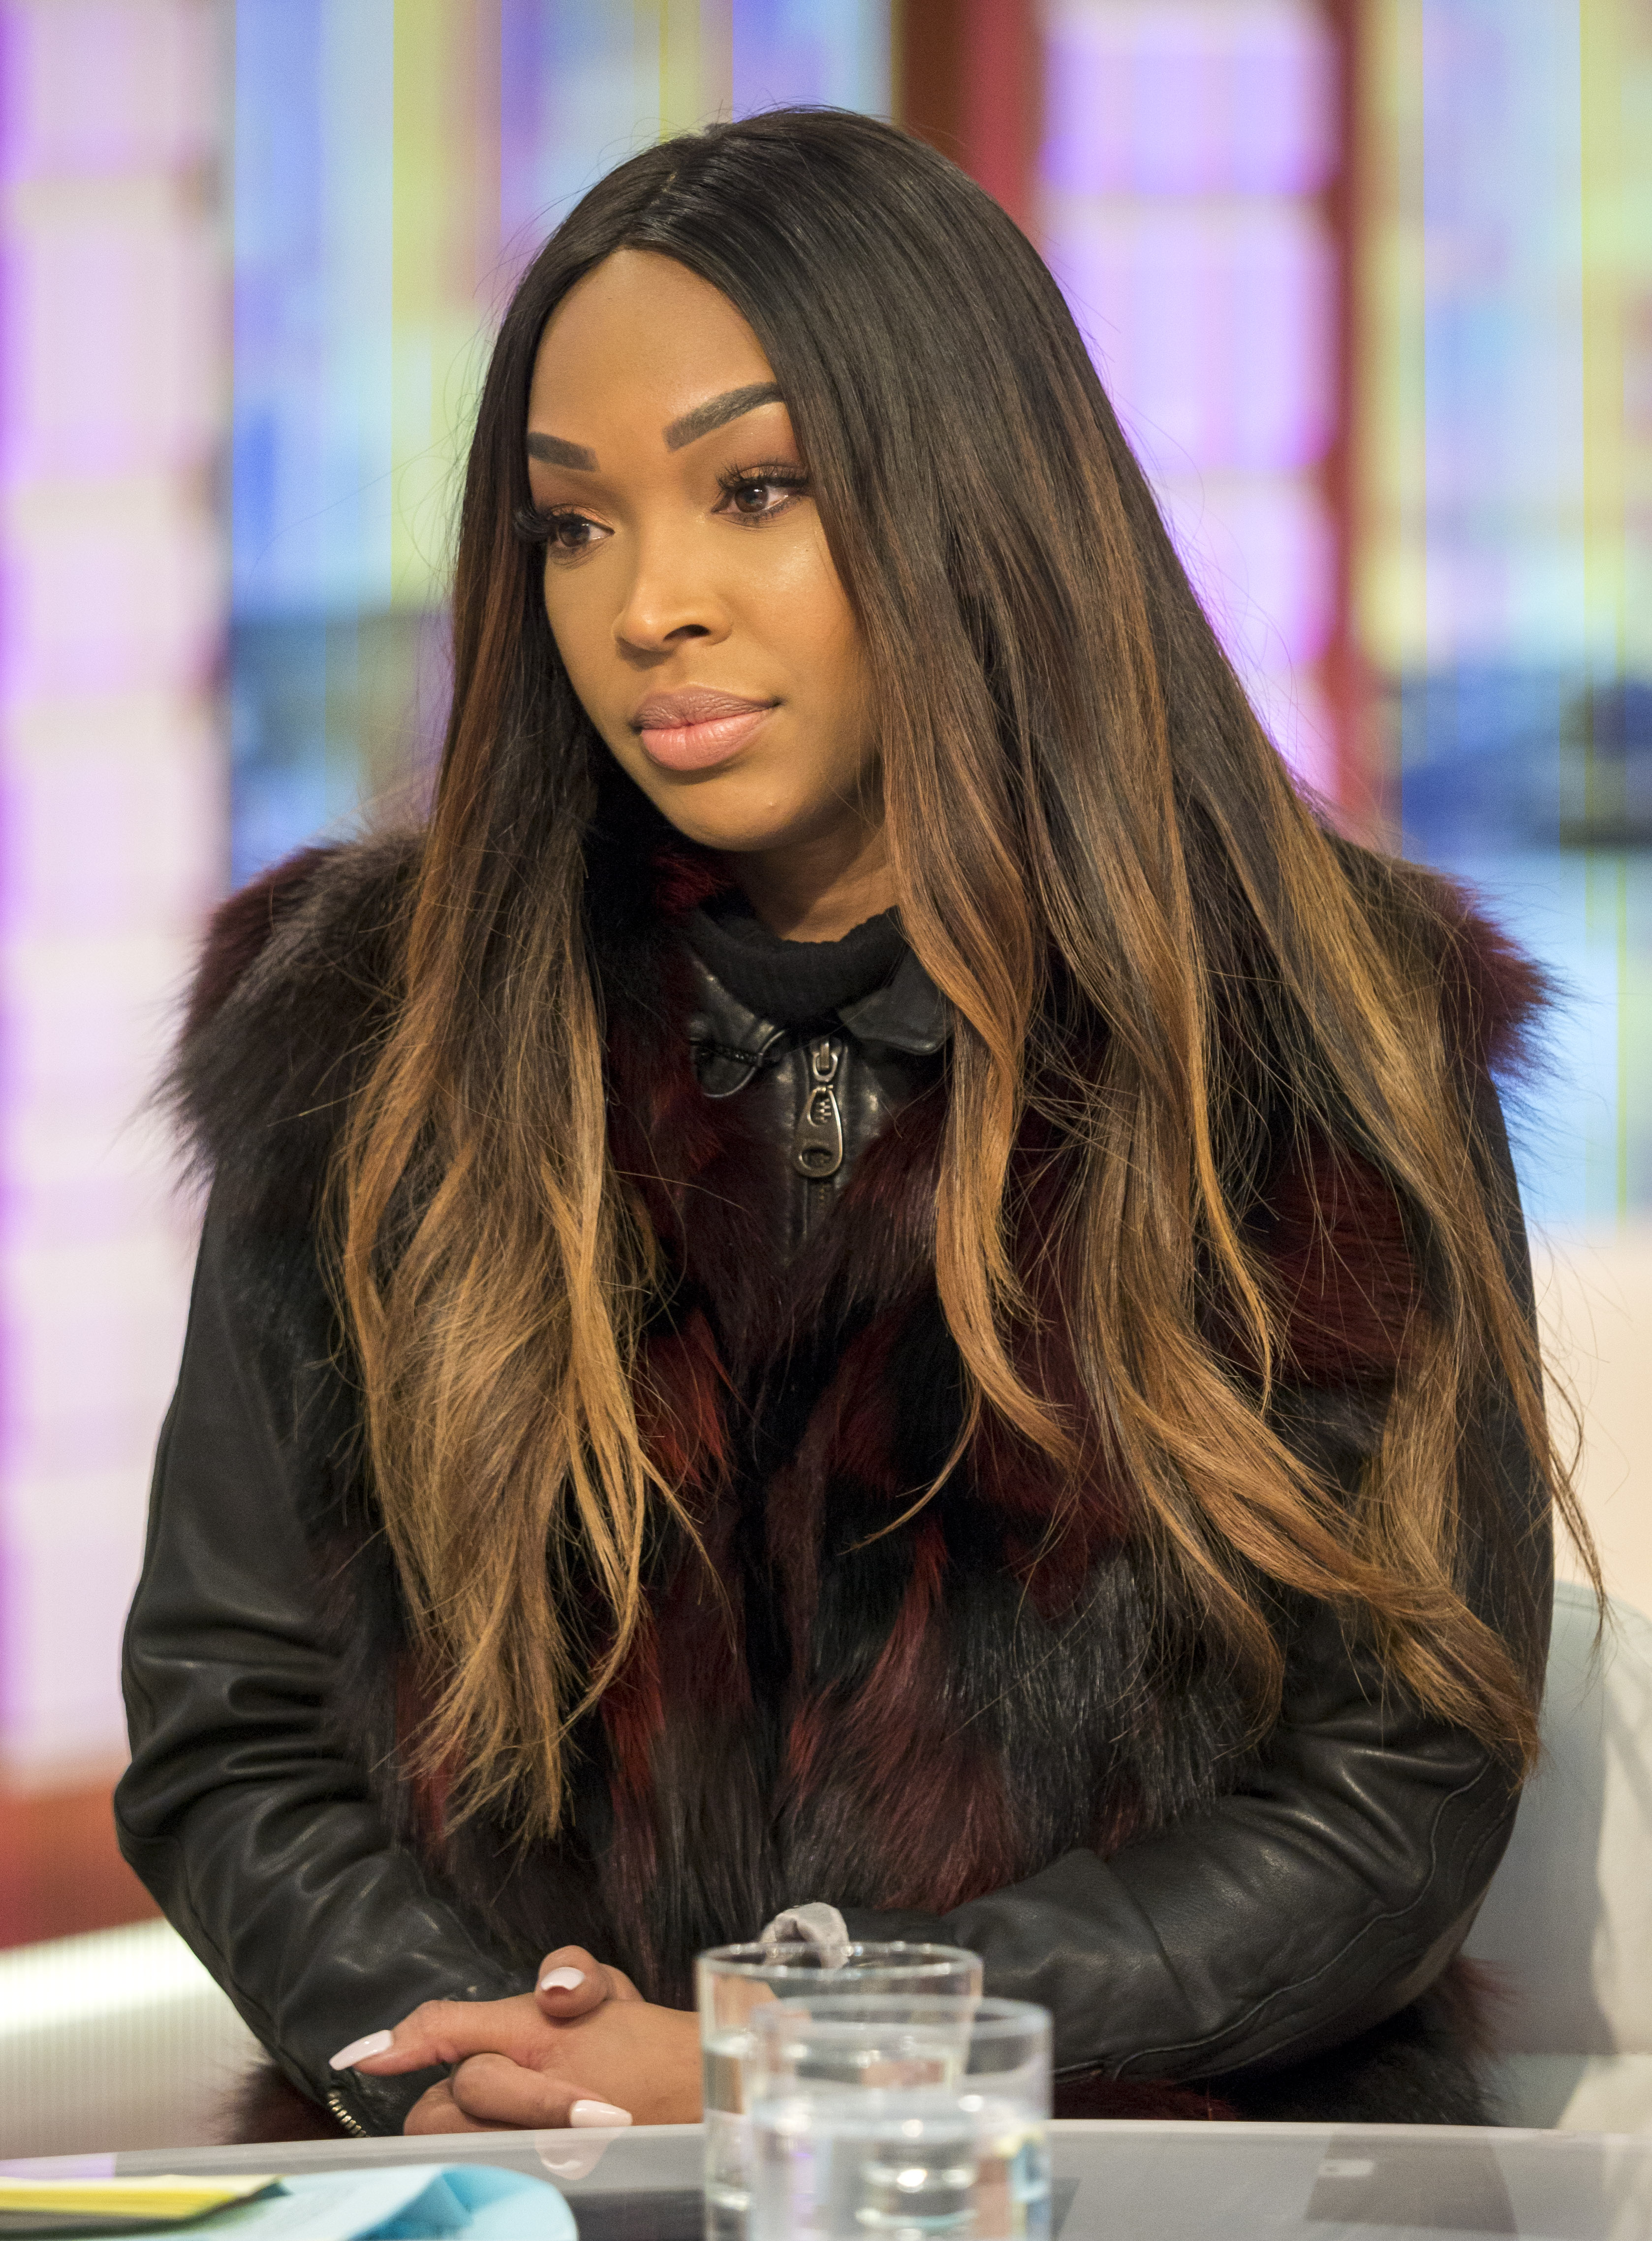 Malika Haqq Defends Her Baby Ad Posts on Instagram: 'I've WORKED My Entire Pregnancy'